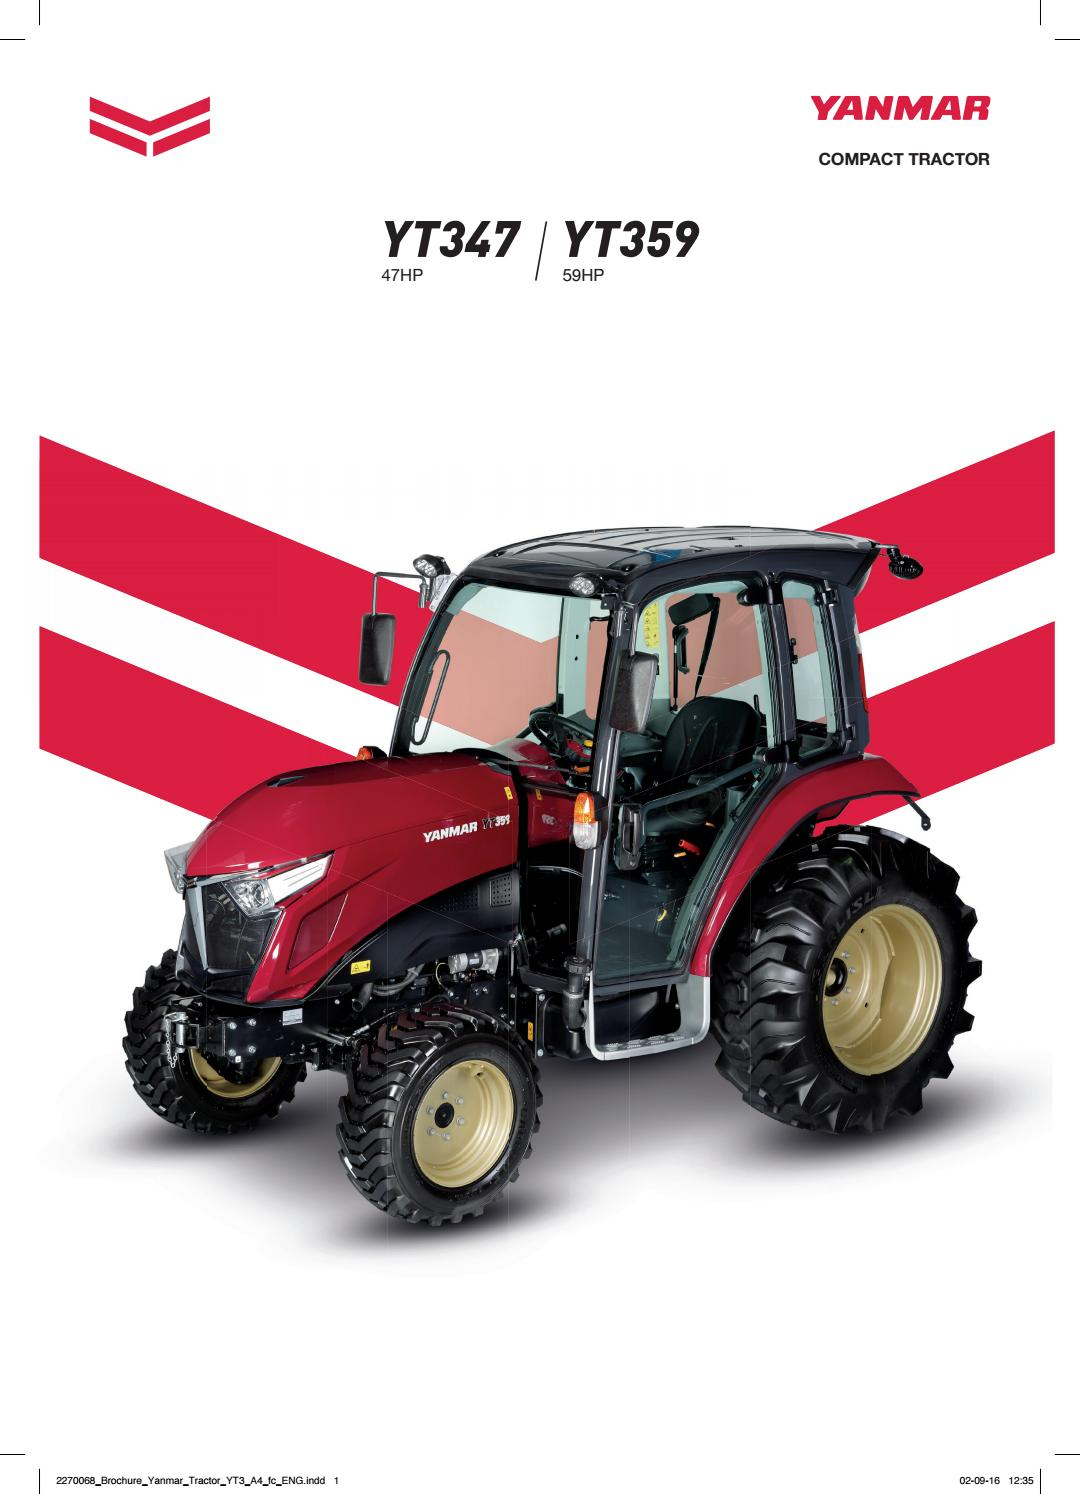 yanmar brochure tractor by 0to9 cross creative agency issuuyanmar fuse box  conversion kit #16